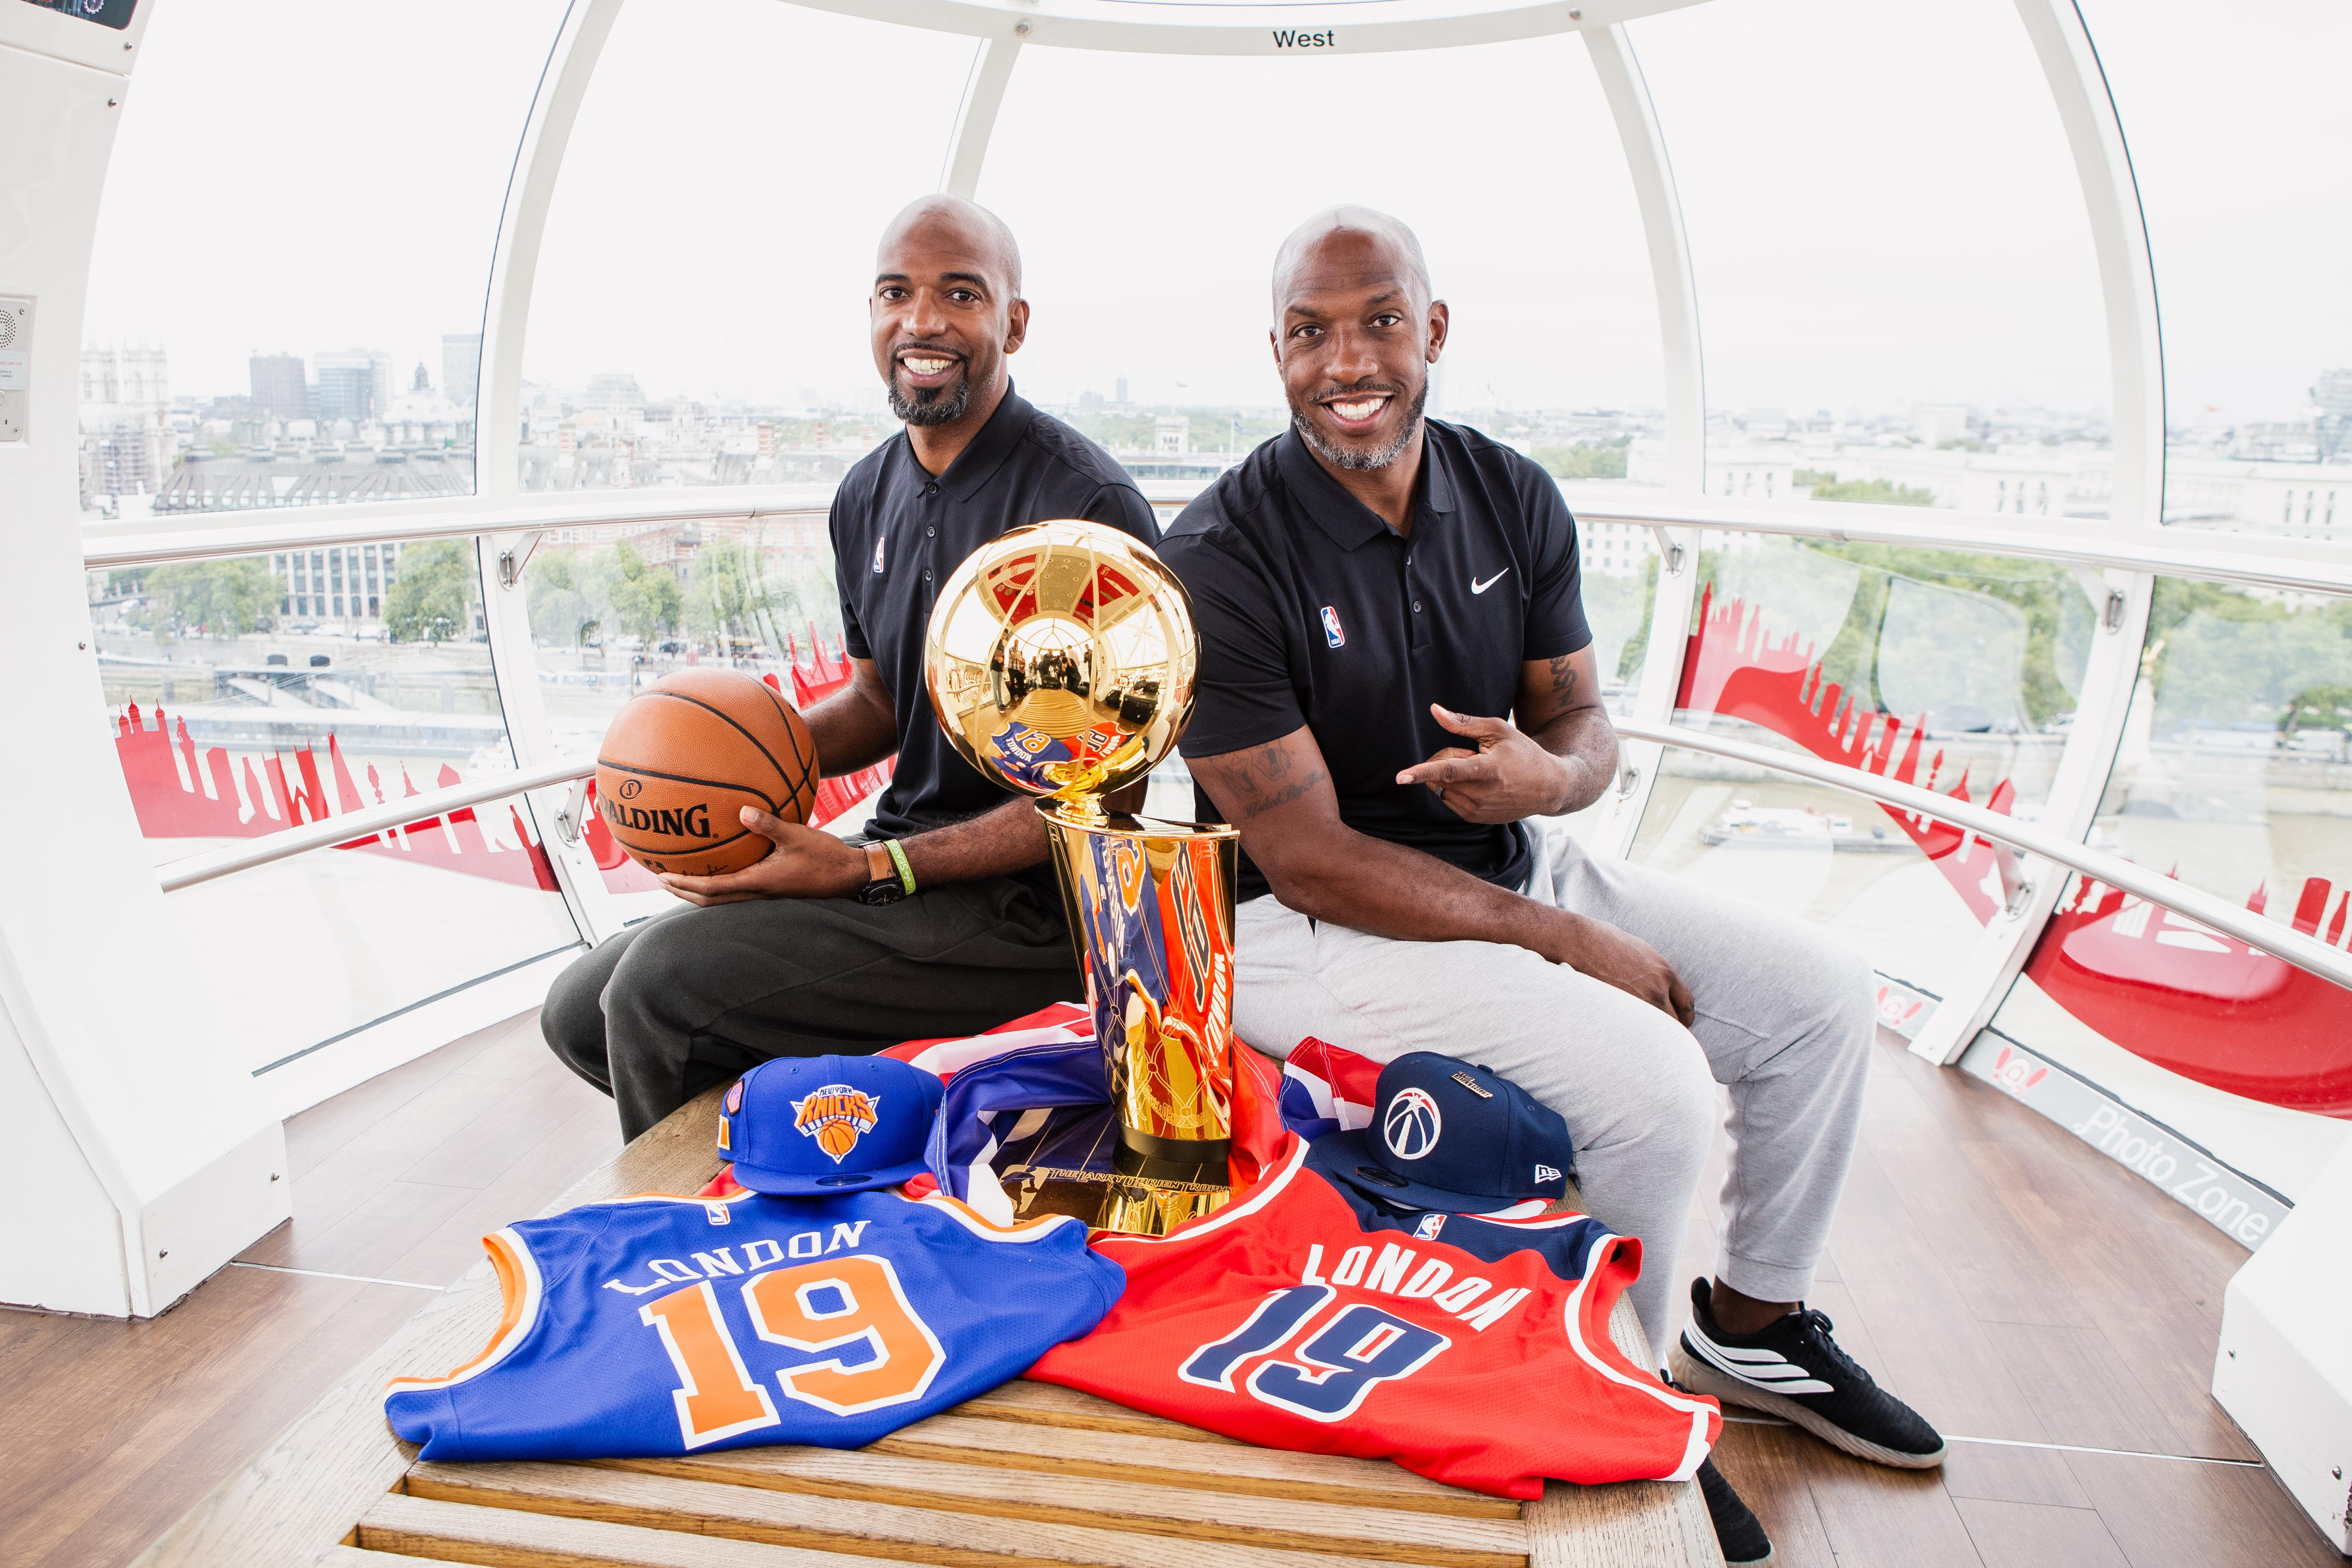 NBA legends Rip Hamilton, left, and Chauncey Billups, right, were in London ahead of the January game between the New York Knicks and Washington Wizards